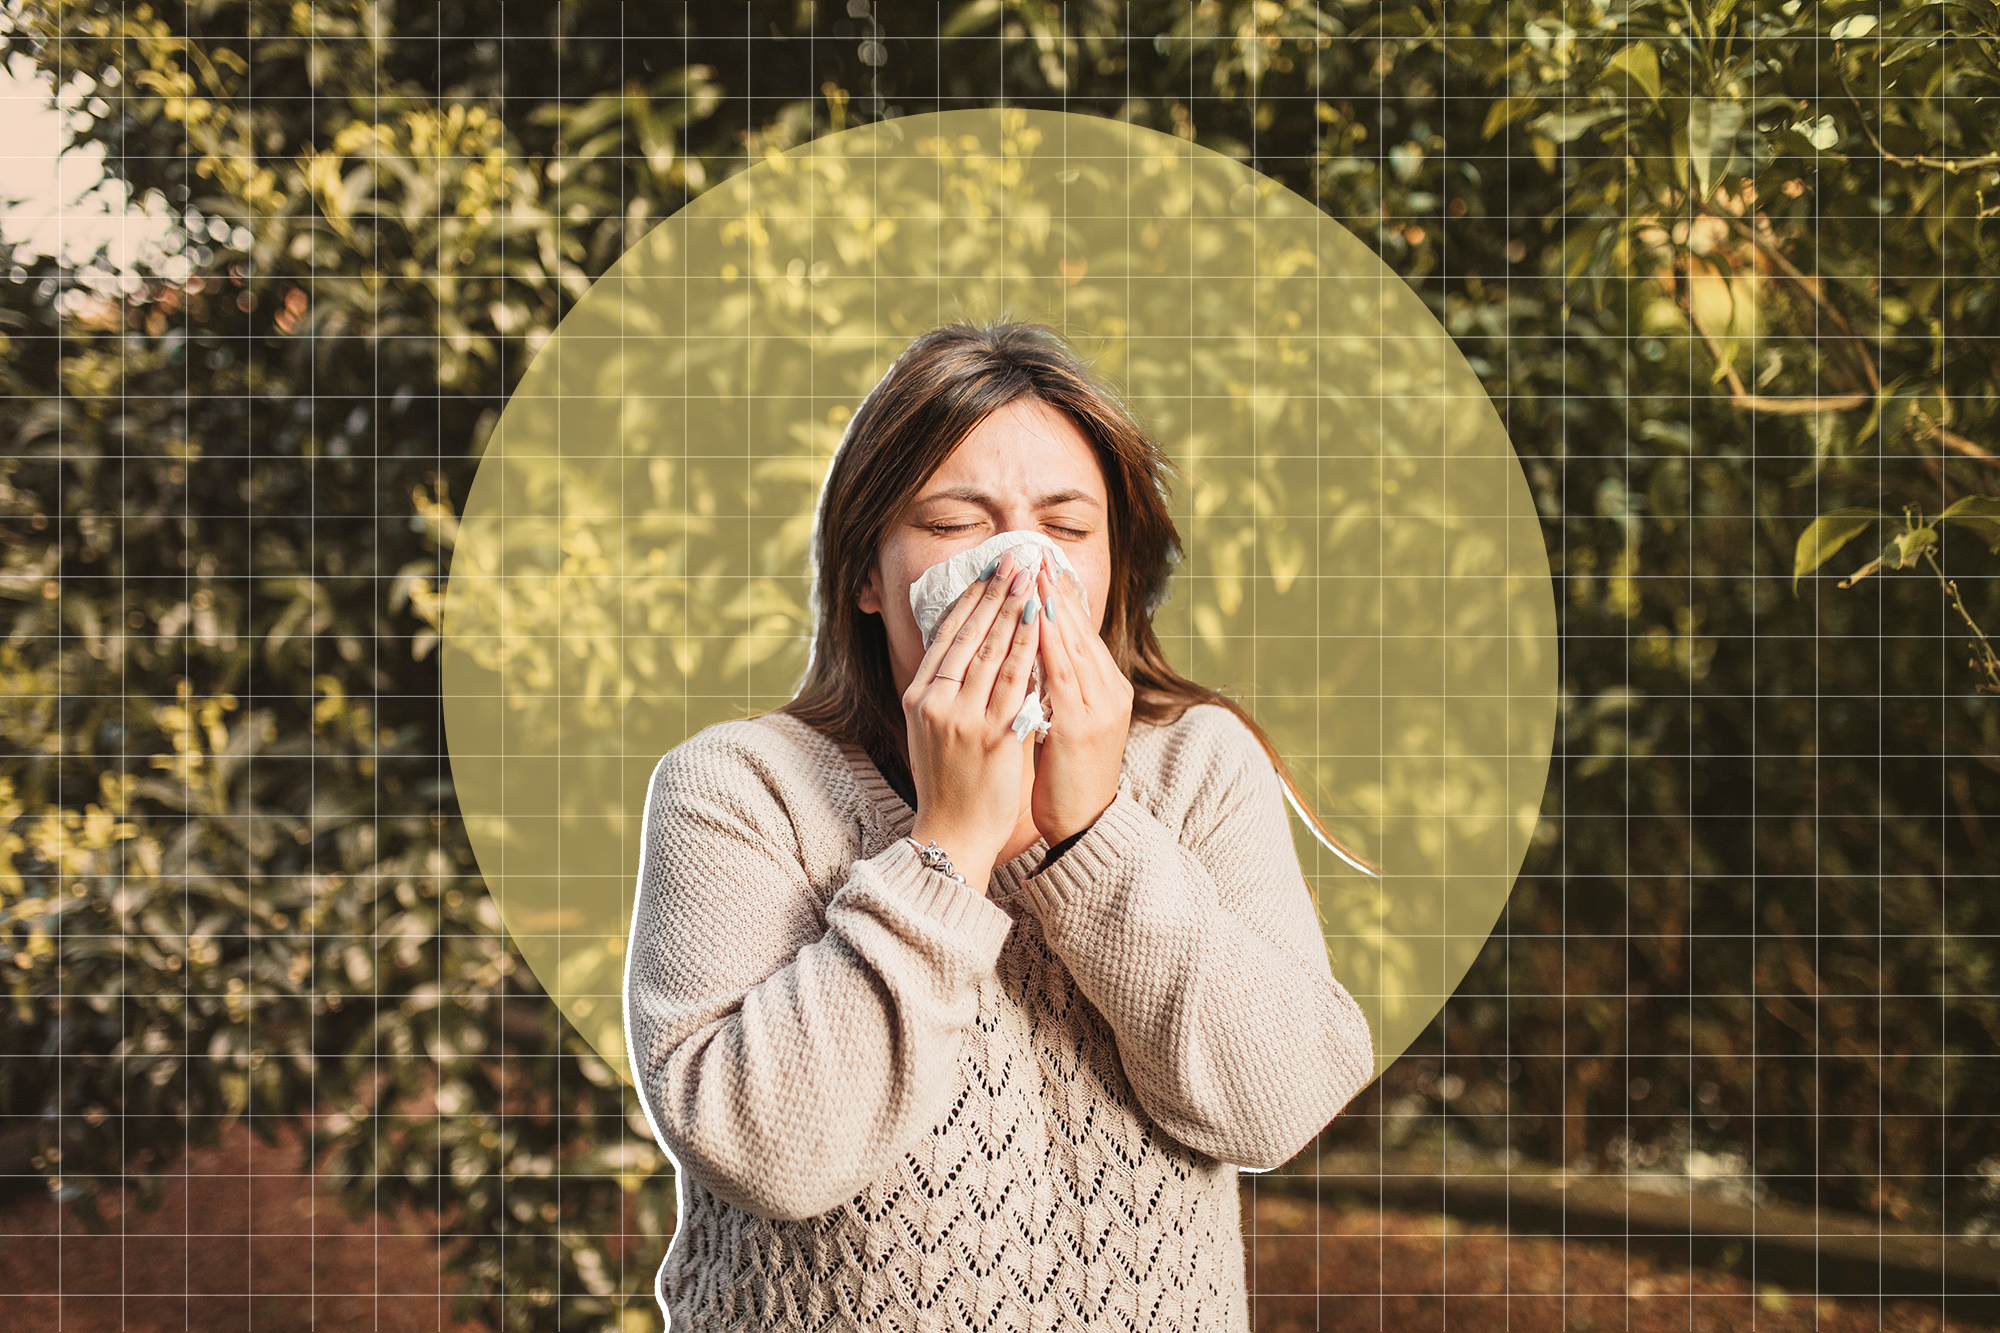 young woman suffering spring allergy and blowing nose with a tissue in the nature